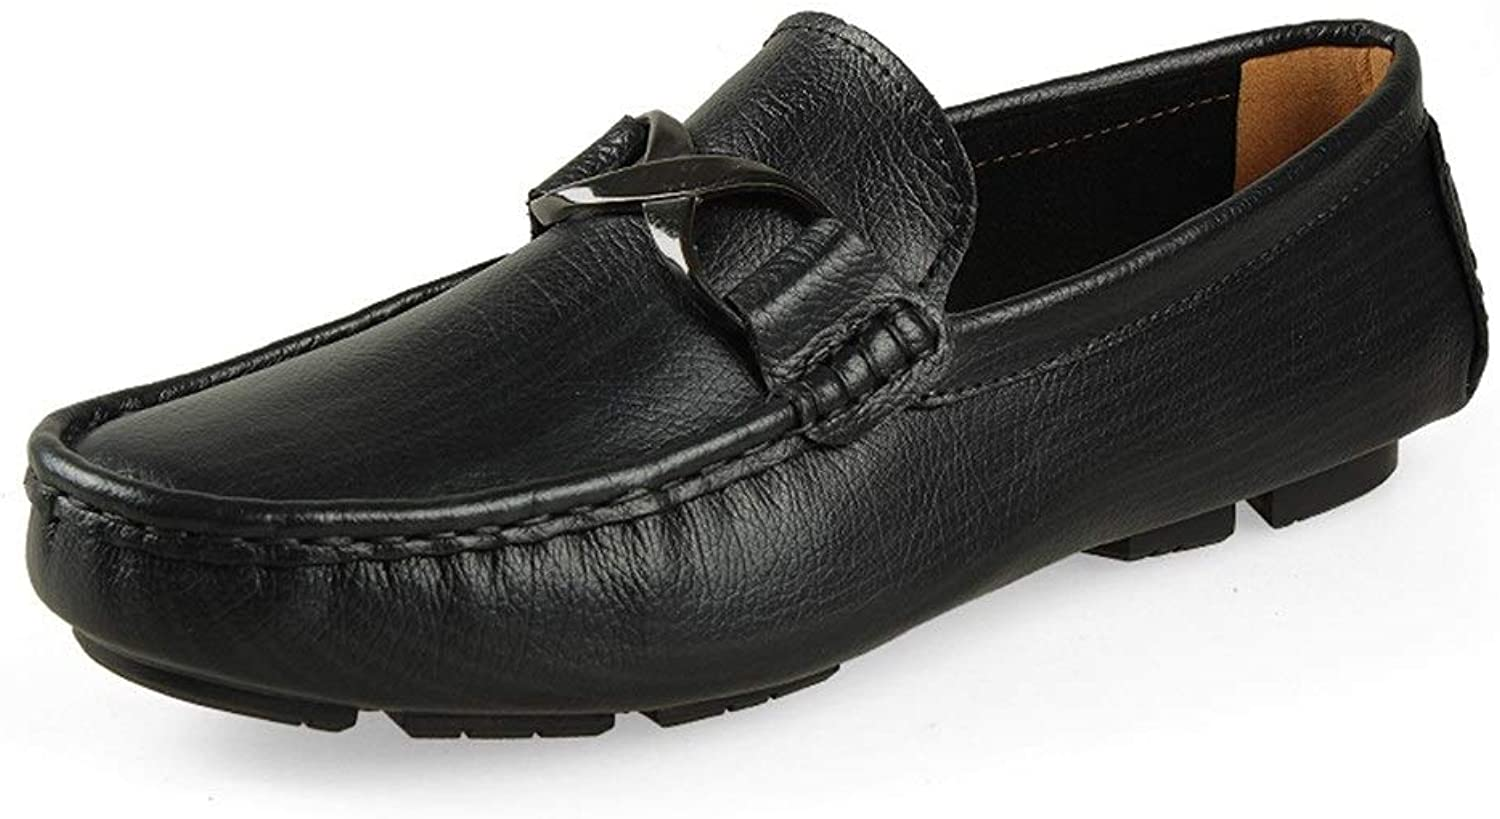 Men Boat Moccasins Slip On Style OX Leather Fashion Metaldecor Round Toe Pure colors Driving Loafer (color   Black, Size   4 UK)